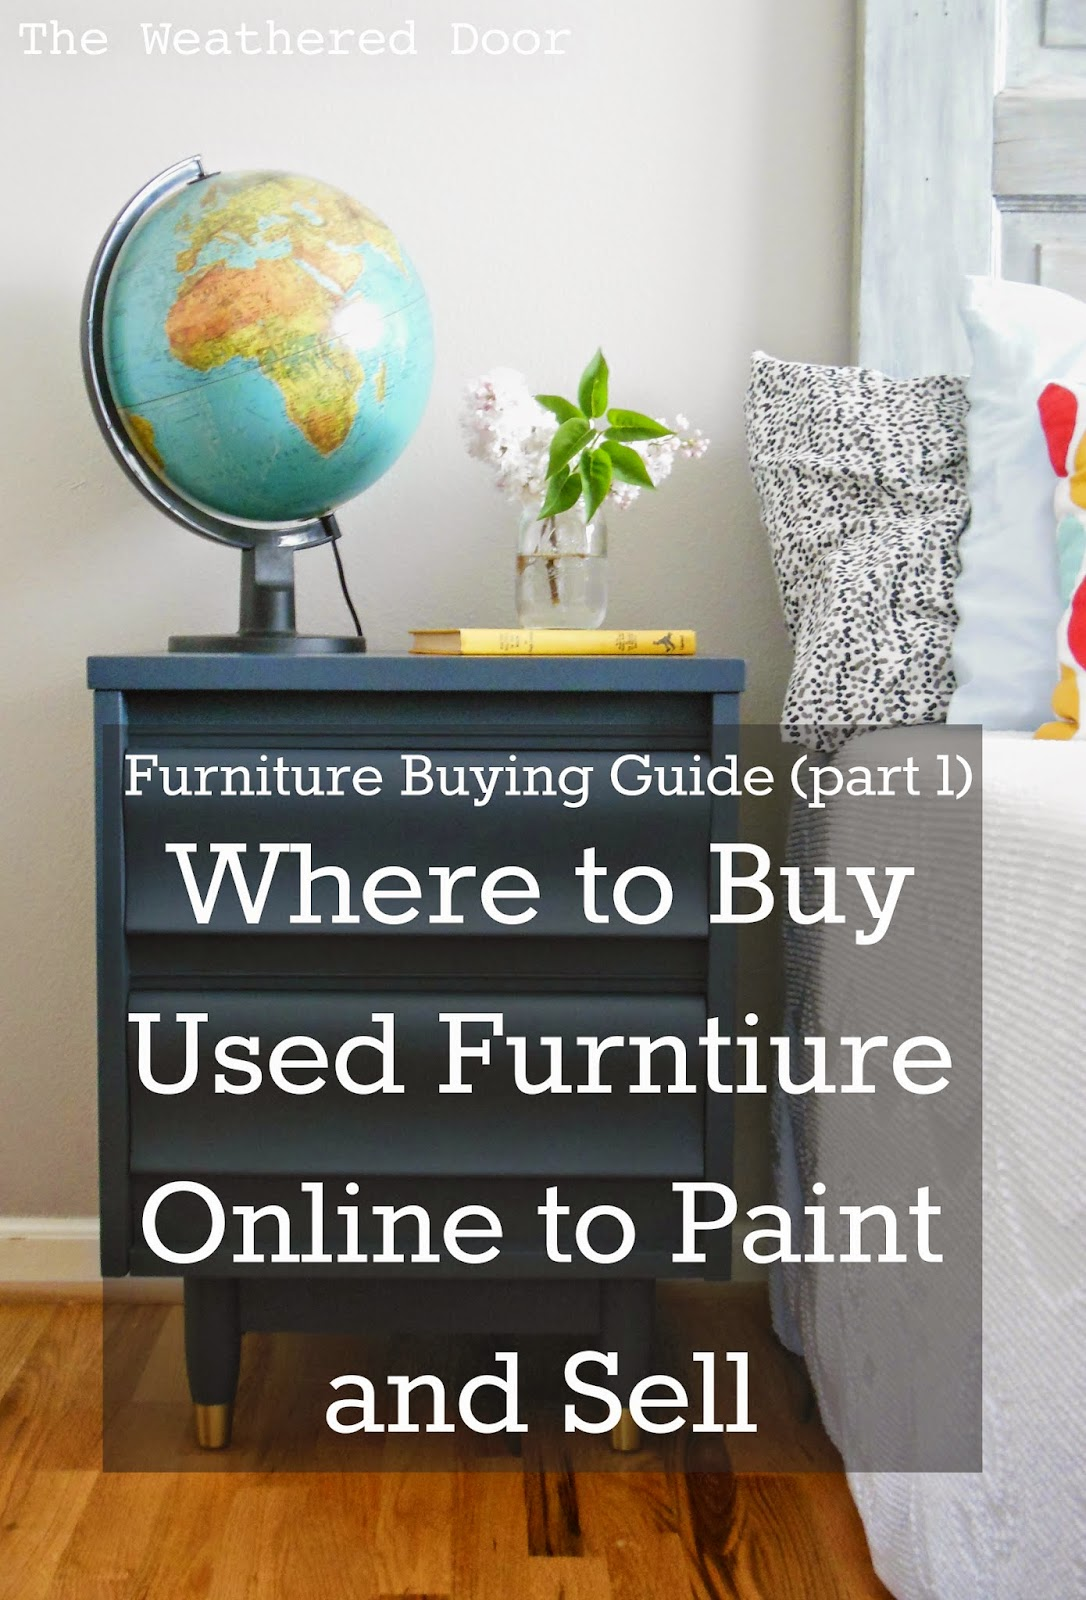 Furniture buying guide where to look for and buy used for Website to sell furniture